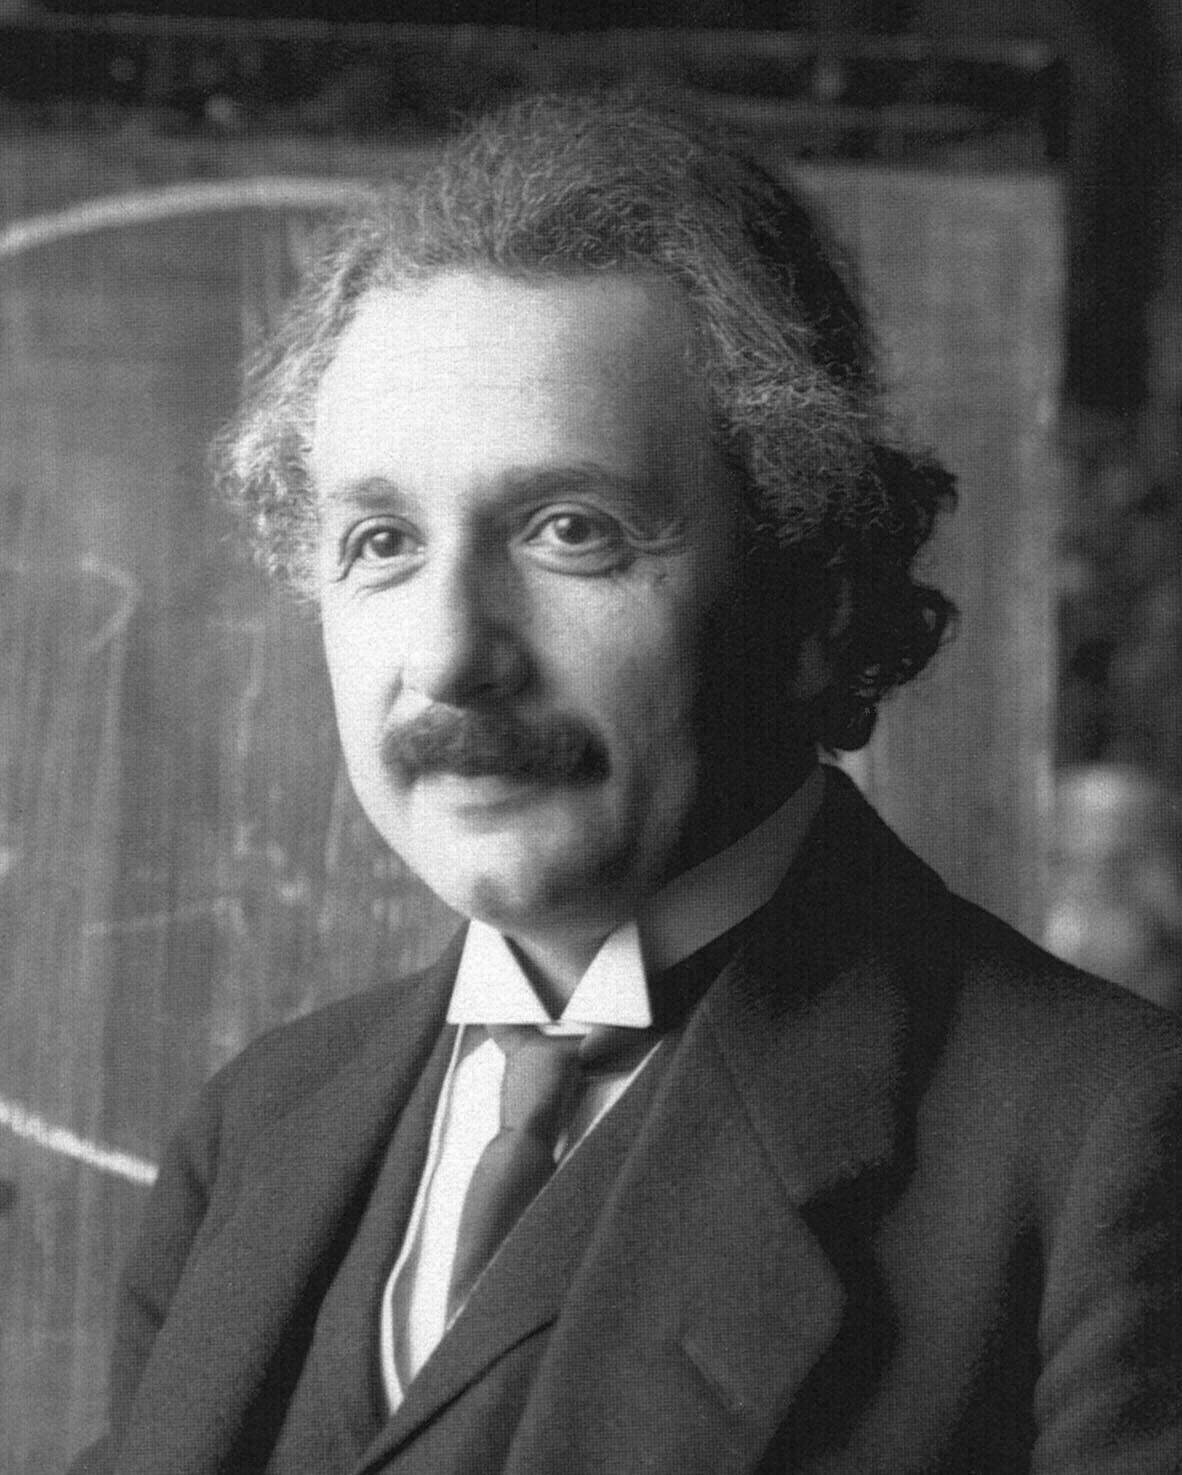 Albert Einstein – Famous Legal Immigrant to America